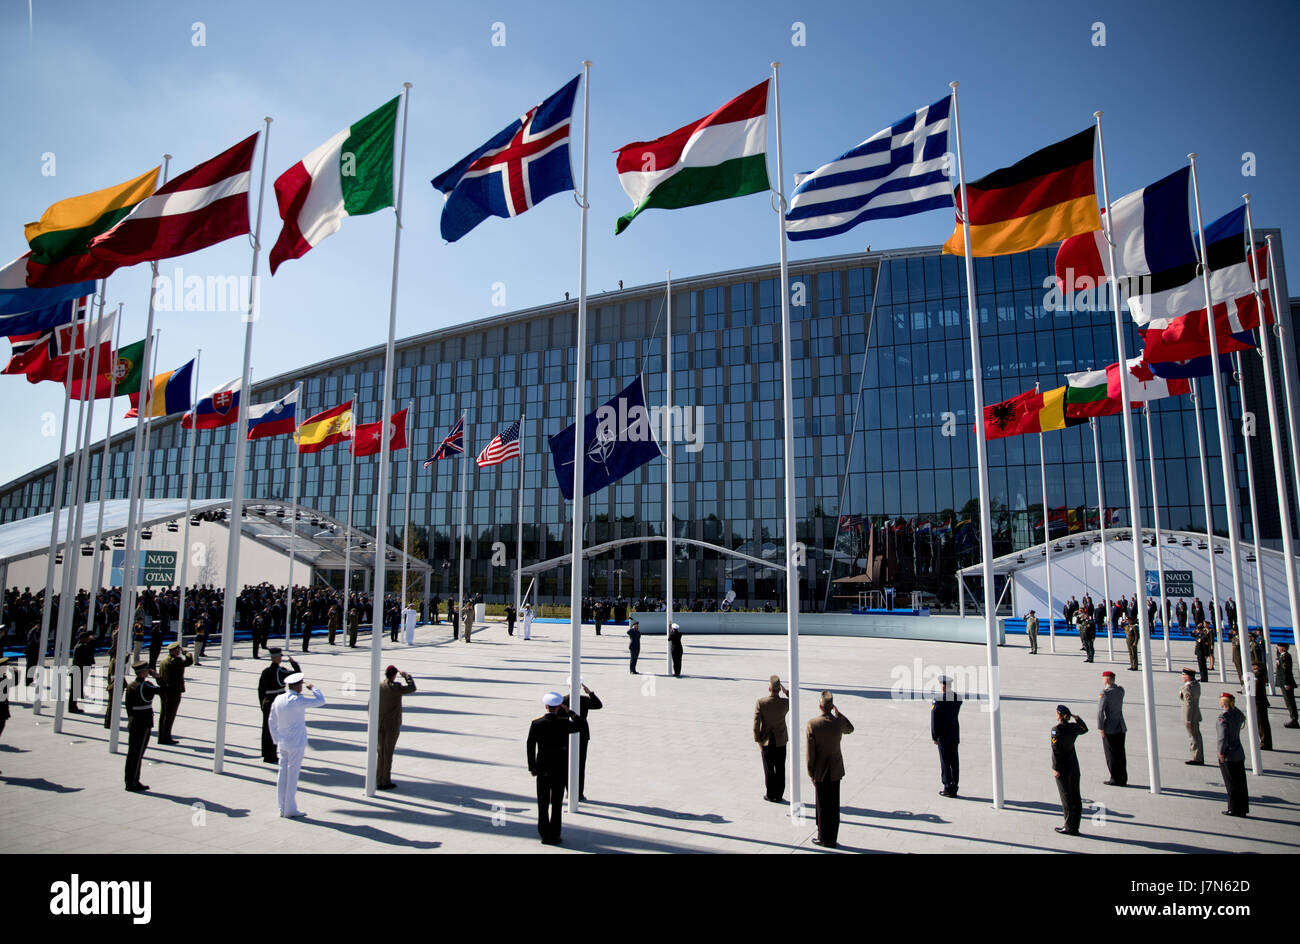 Brussels, Belgium. 25th May, 2017. The flags of the NATO member states are hoisted during the ceremonial handover - Stock Image